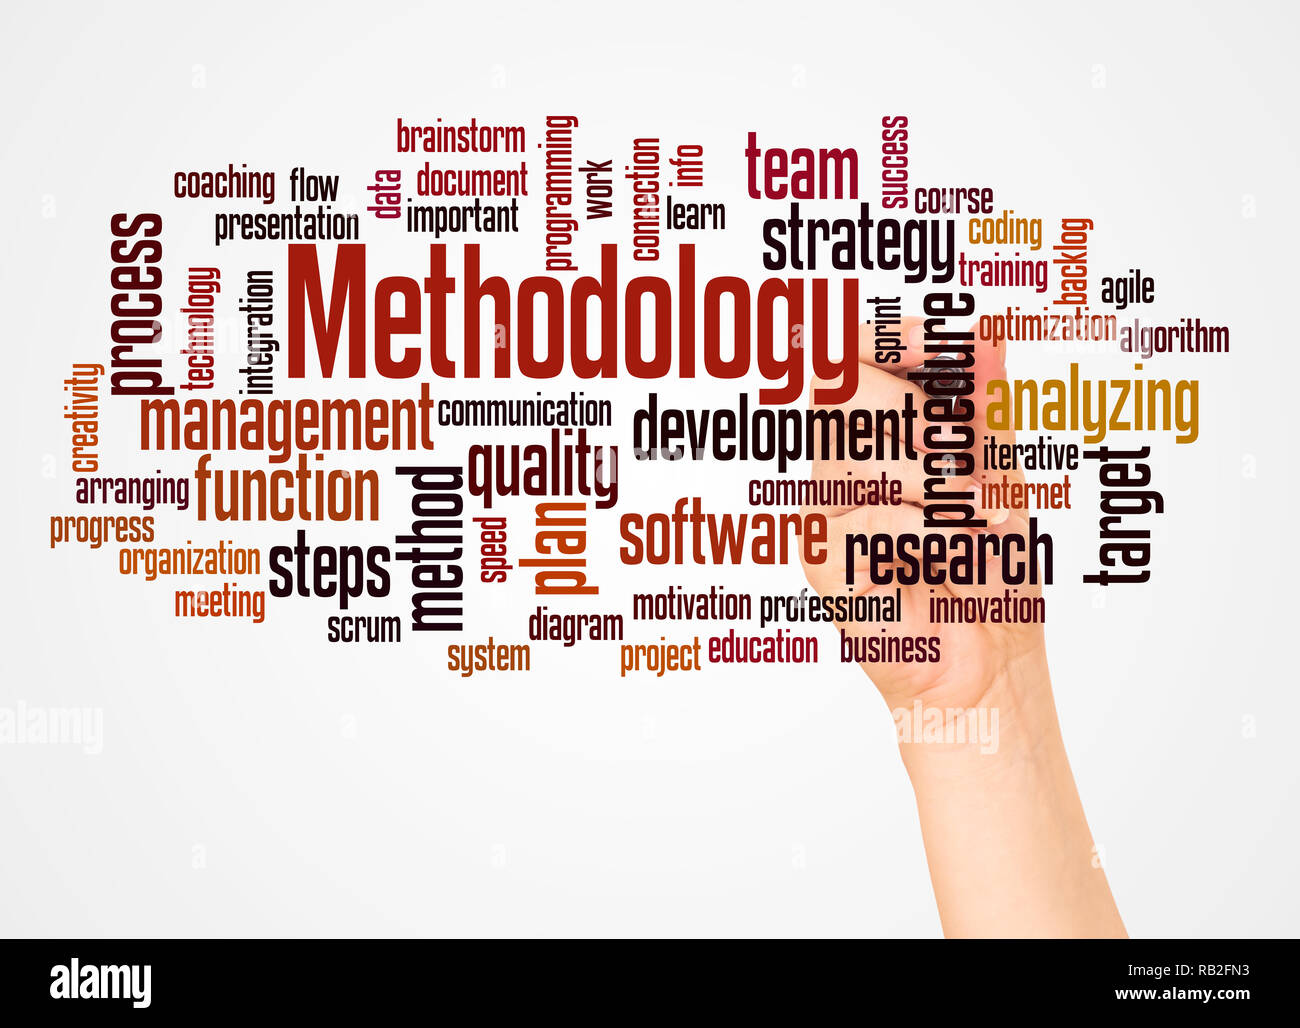 Methodology word cloud and hand with marker concept on white background. - Stock Image